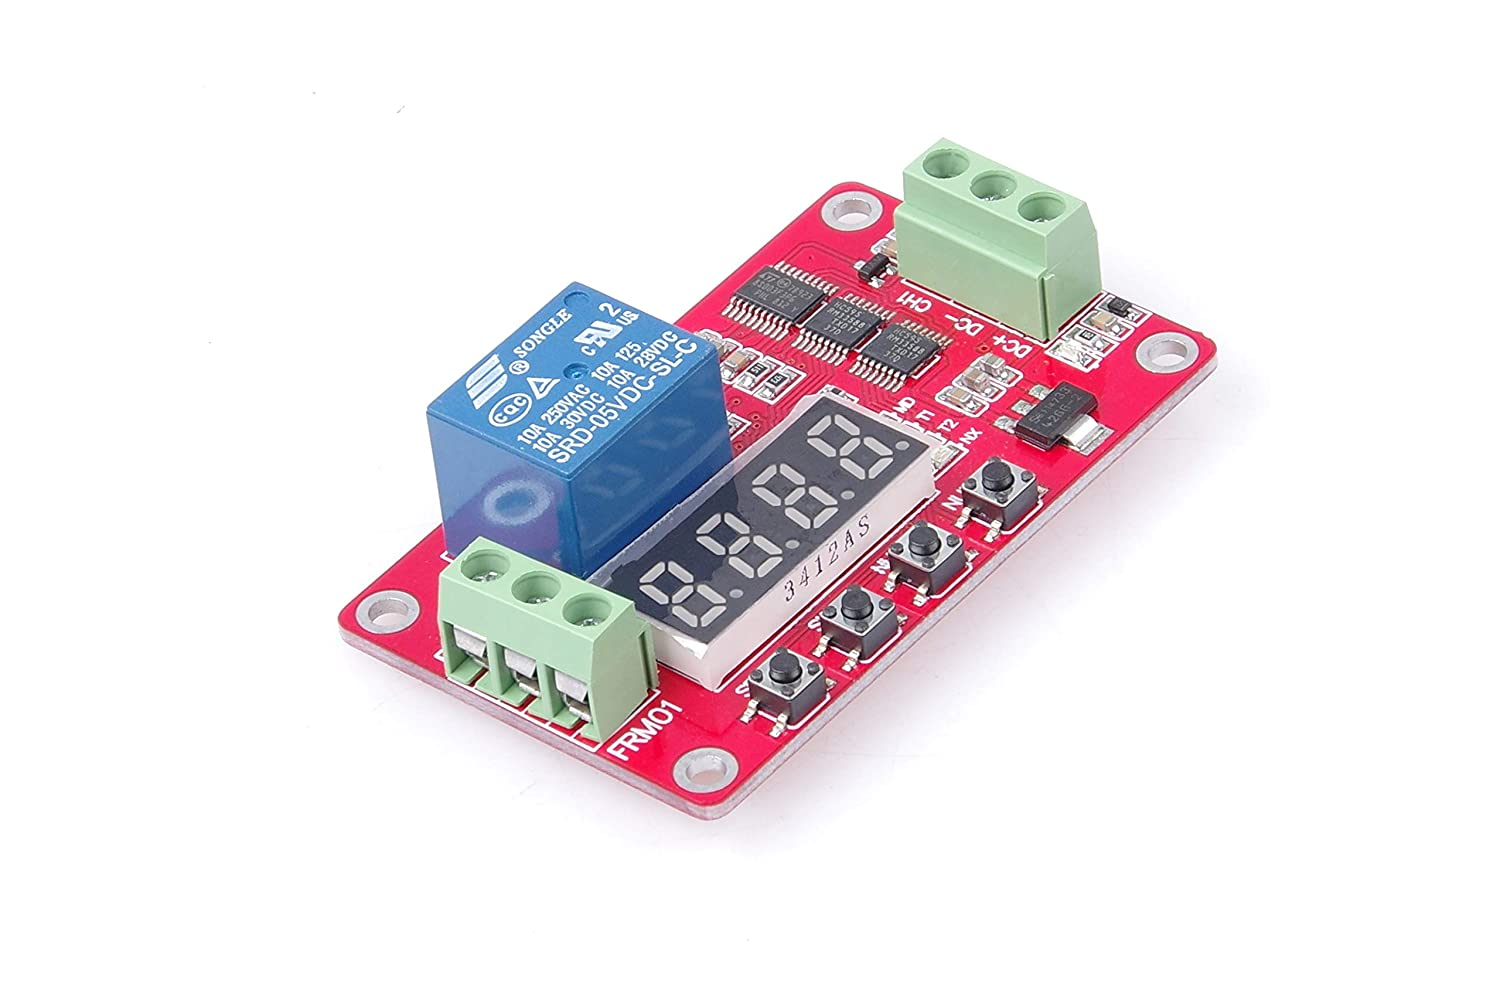 5V DC Relay Module 5V 1-Channel KNACRO Multifunctional DC 5 Volt 1 Channel Relay Board Programmable Cycle Relay Module 10A Portable Timer Switch Board Power Switch Circuit 18 Modes